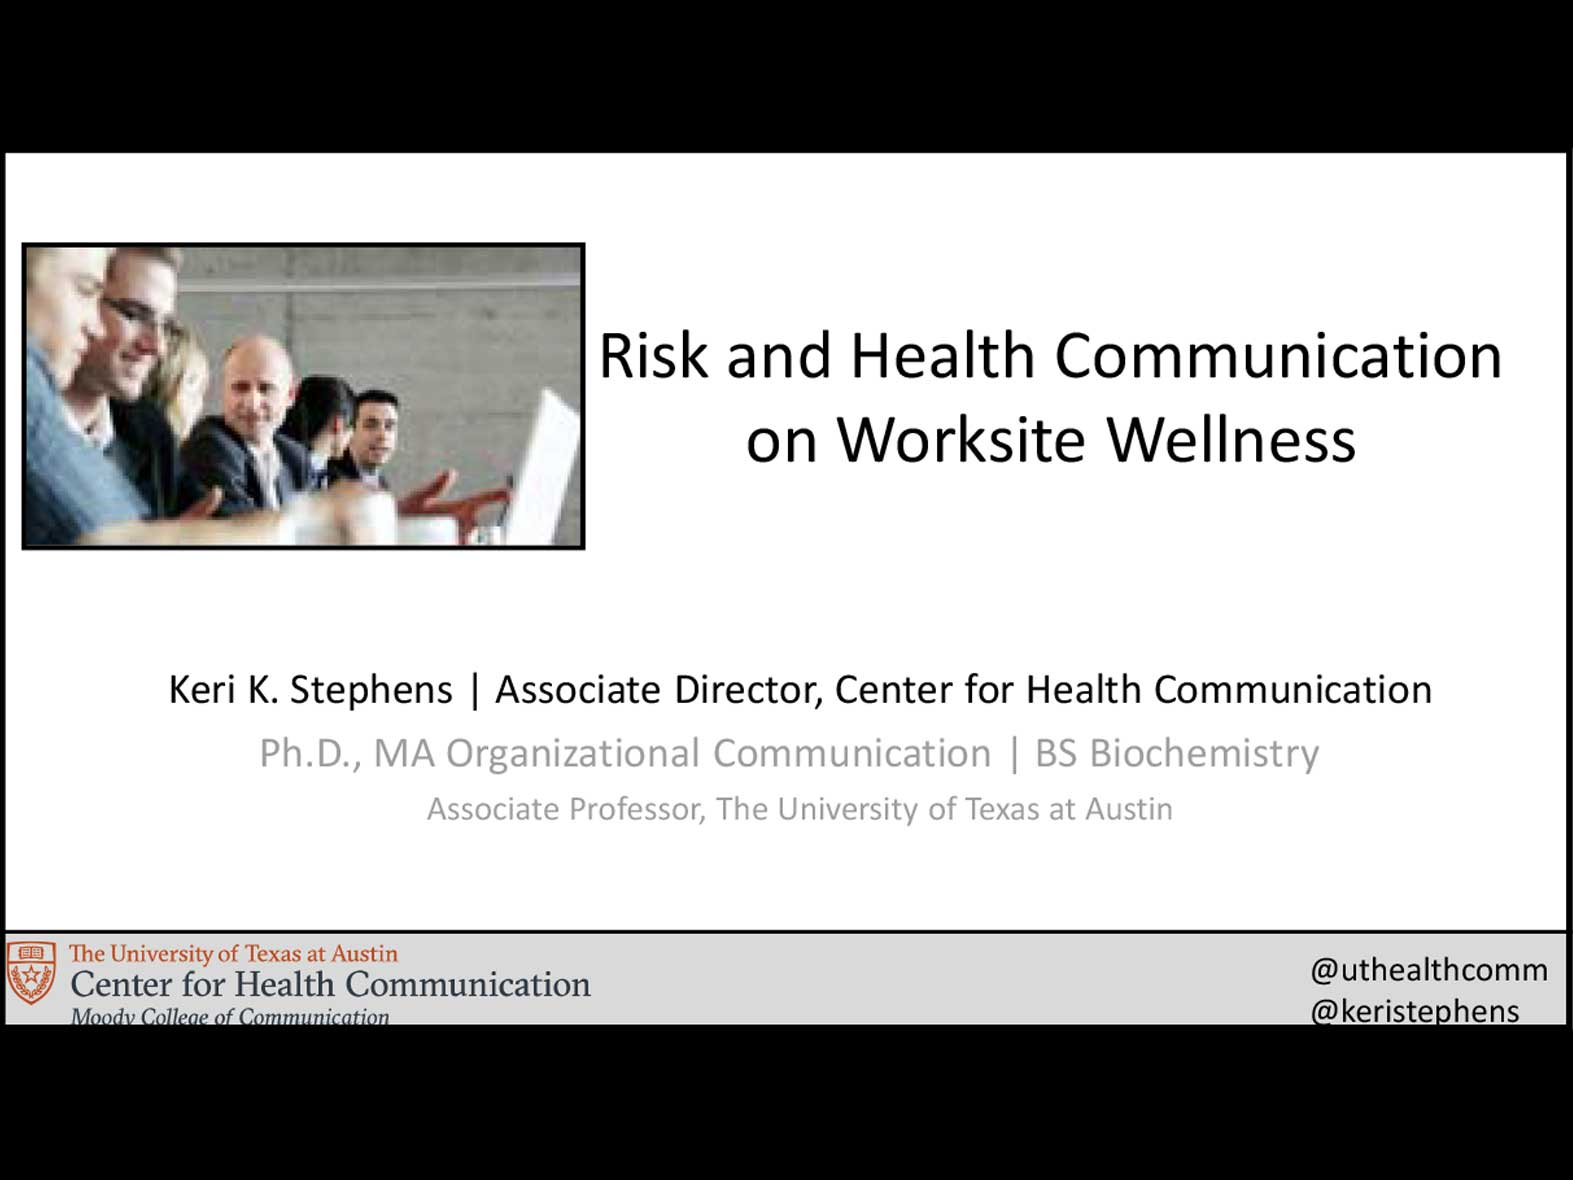 Risk and Health Communication on Worksite Wellness